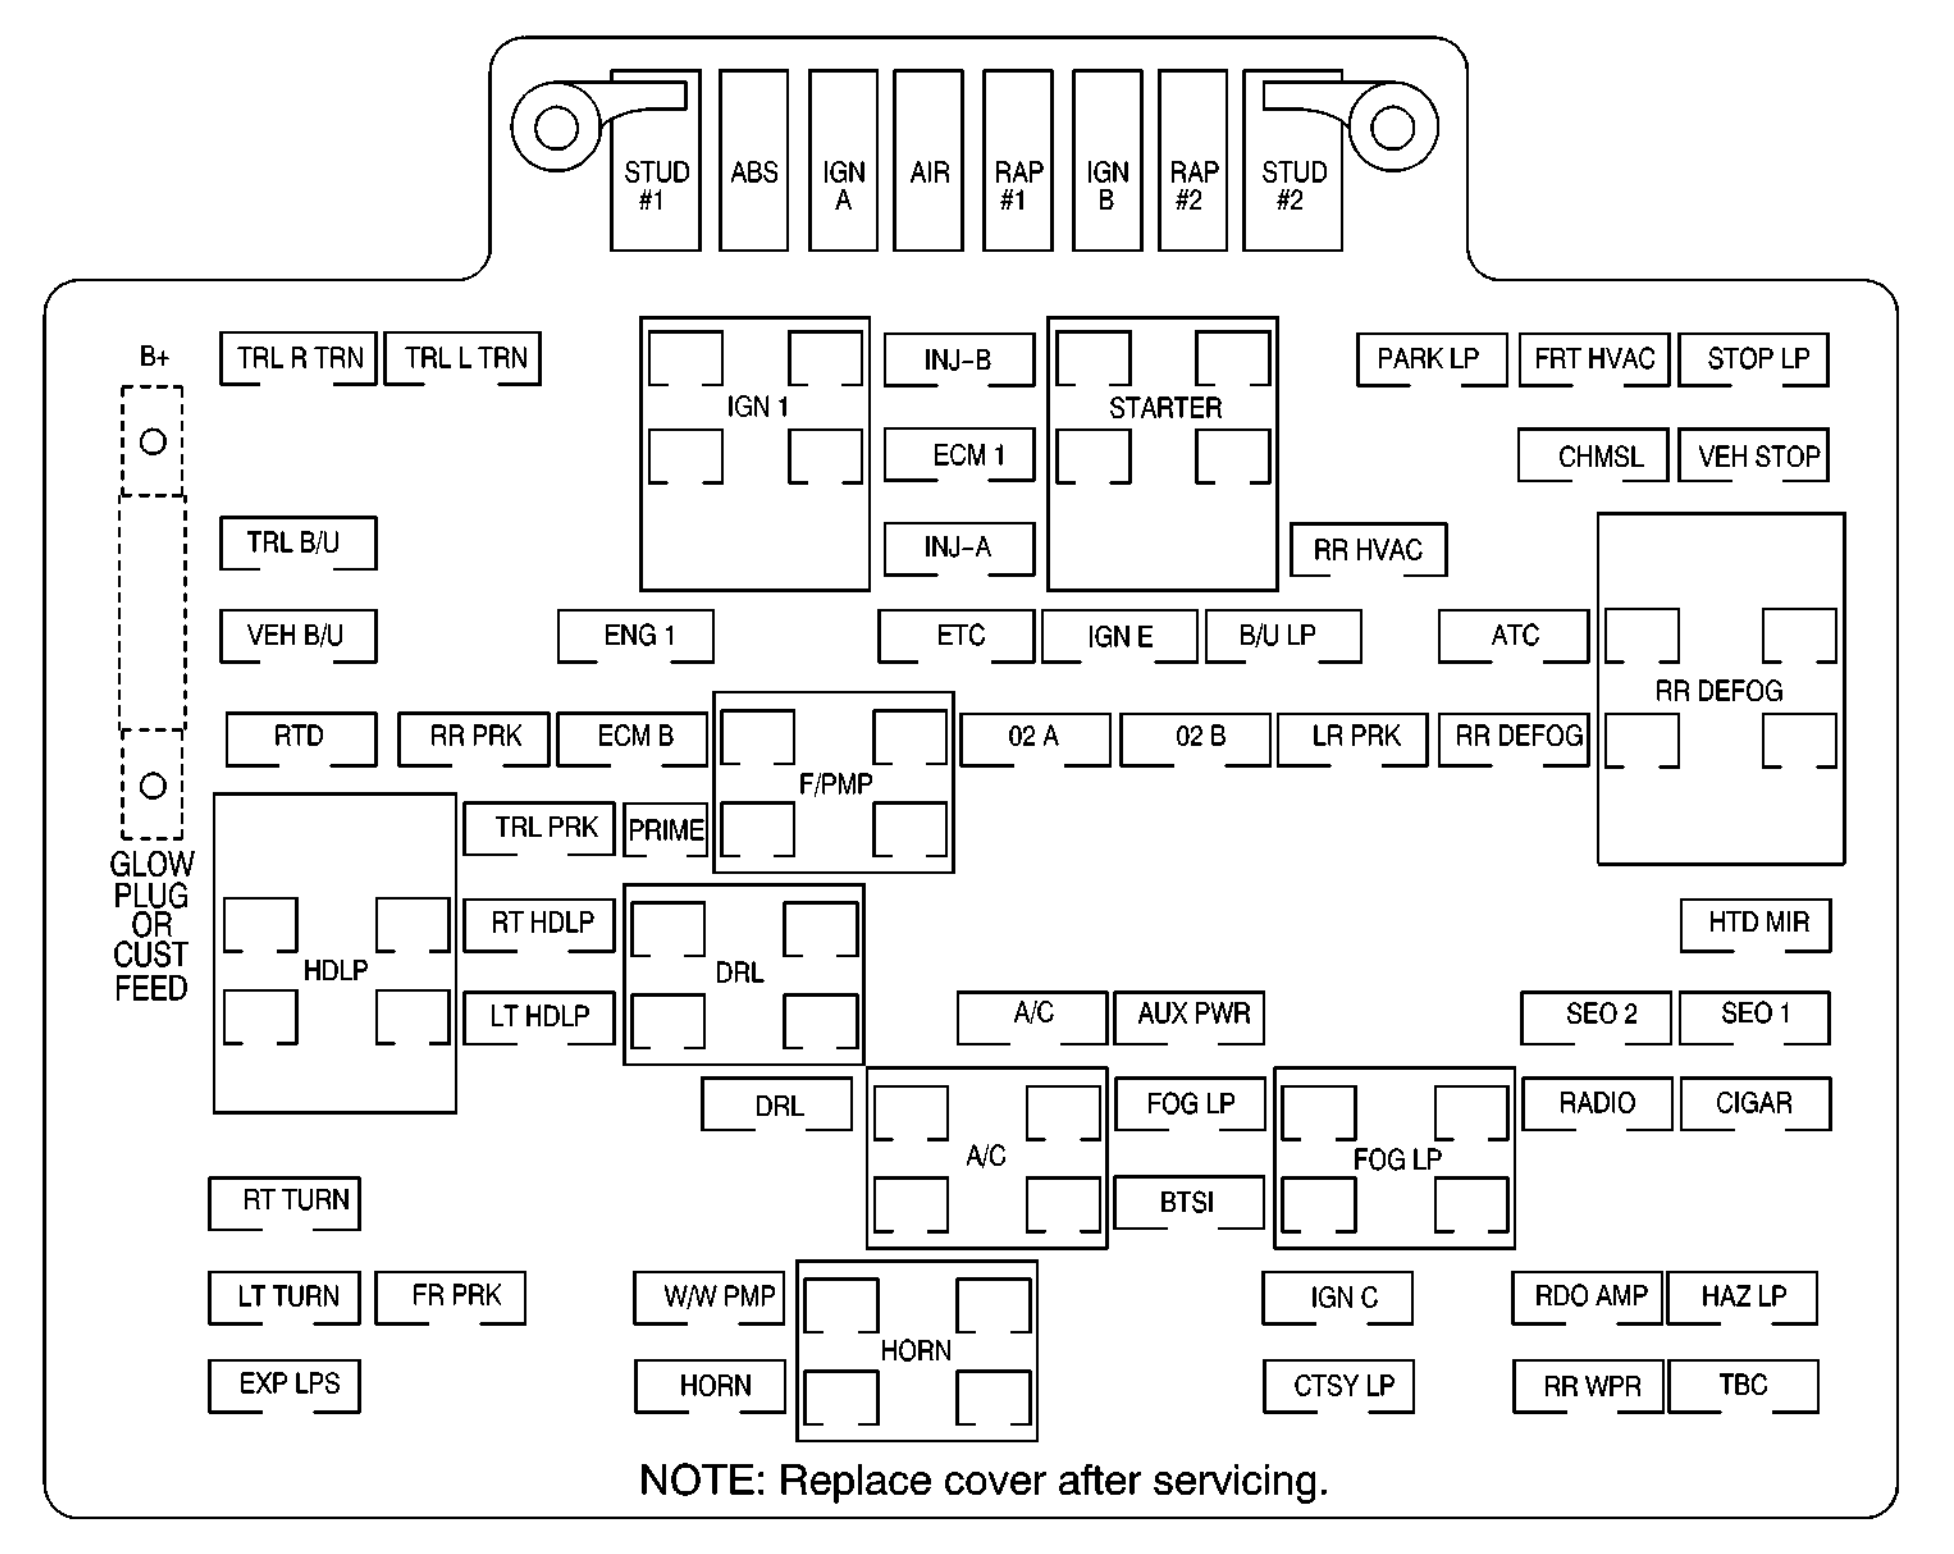 2002 Chevy Silverado Fuse Box Diagram Image Details Wiring 1986 K10 Block Library Ford Powerstroke